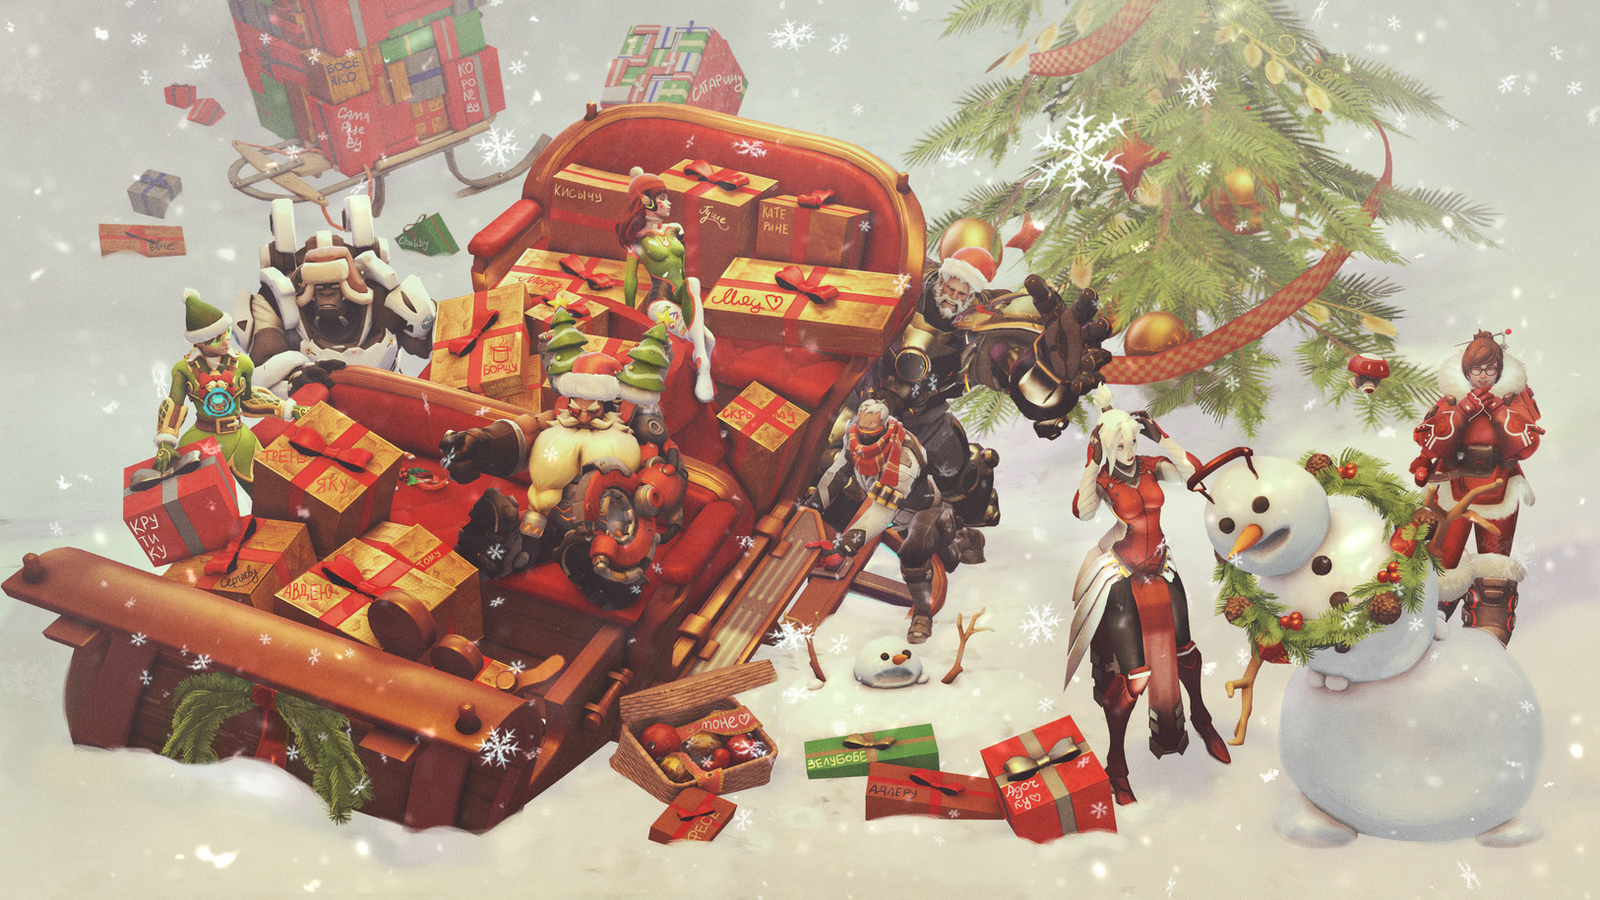 Christmas crash overwatch by shmagomolova on deviantart - Overwatch christmas wallpaper ...